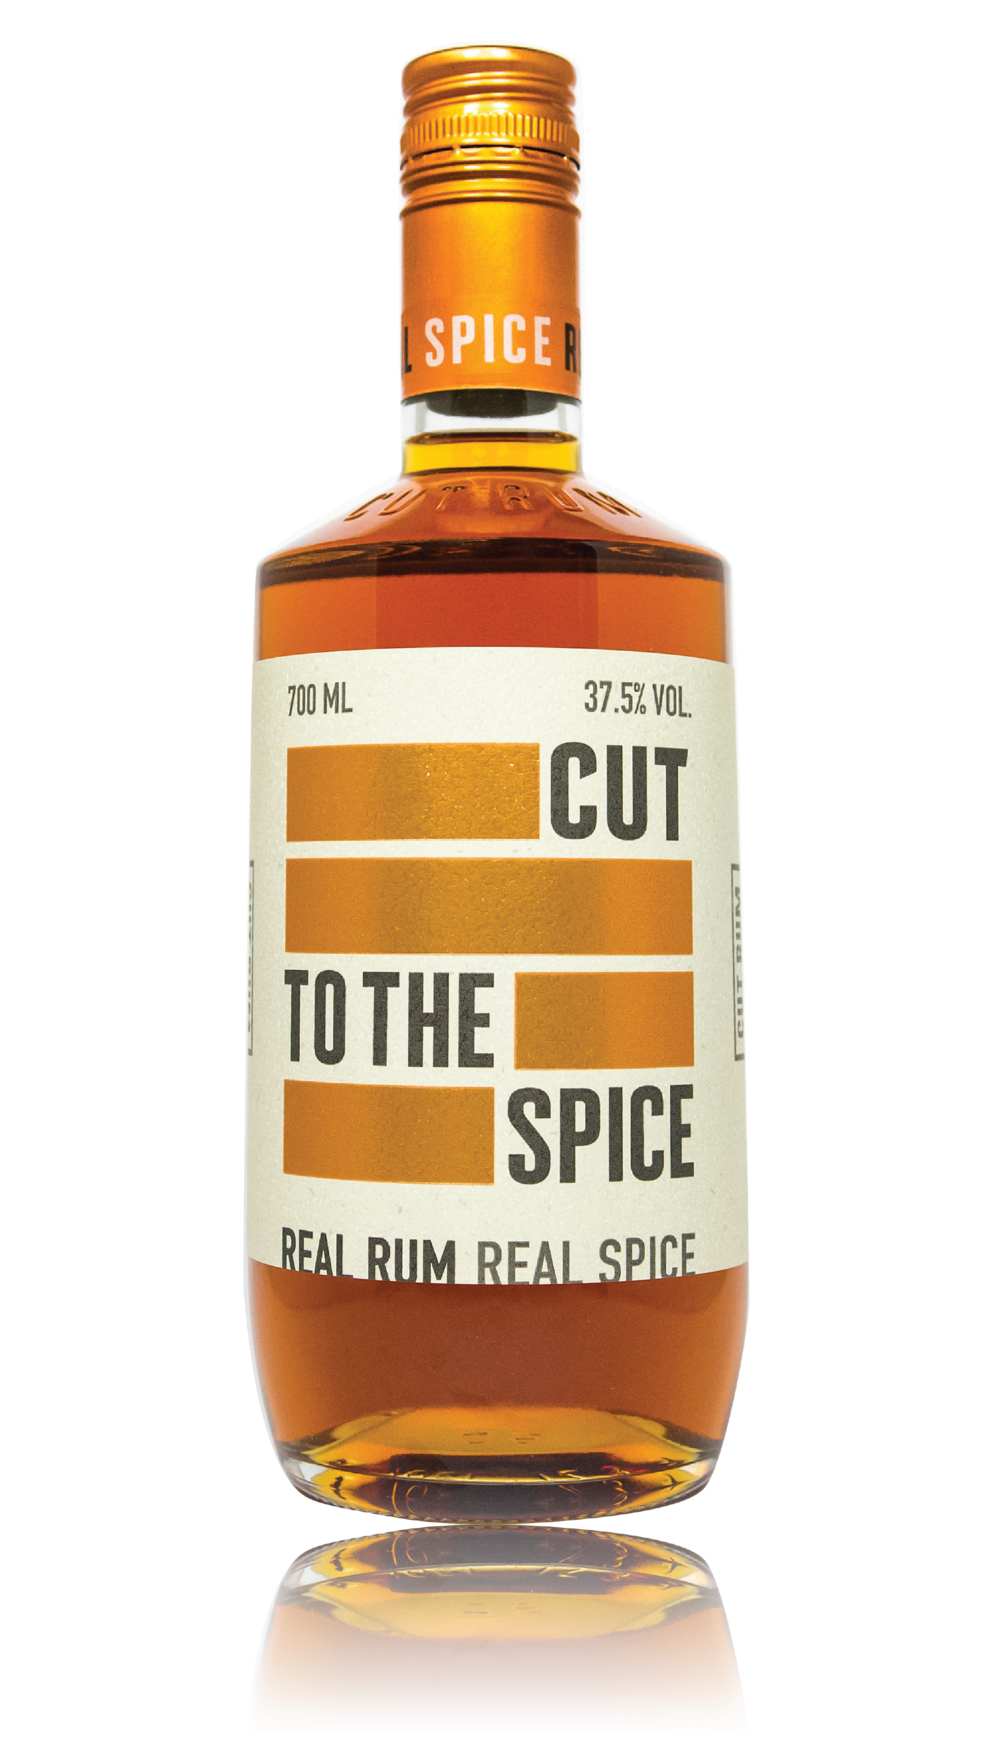 CUT spiced rum -small- reflection-01-01-01-01.png